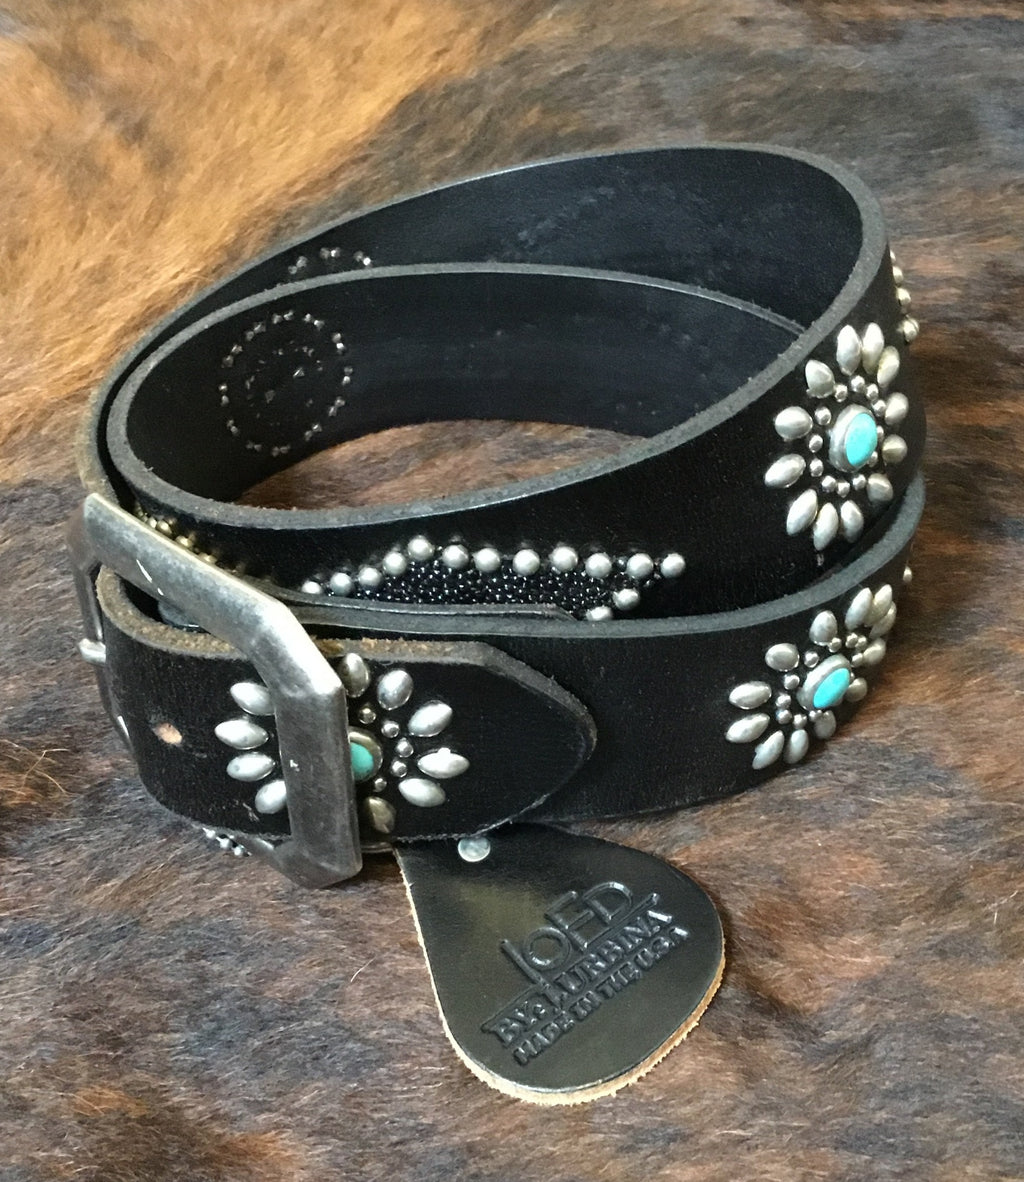 Women's Black Leather Belt with STingray